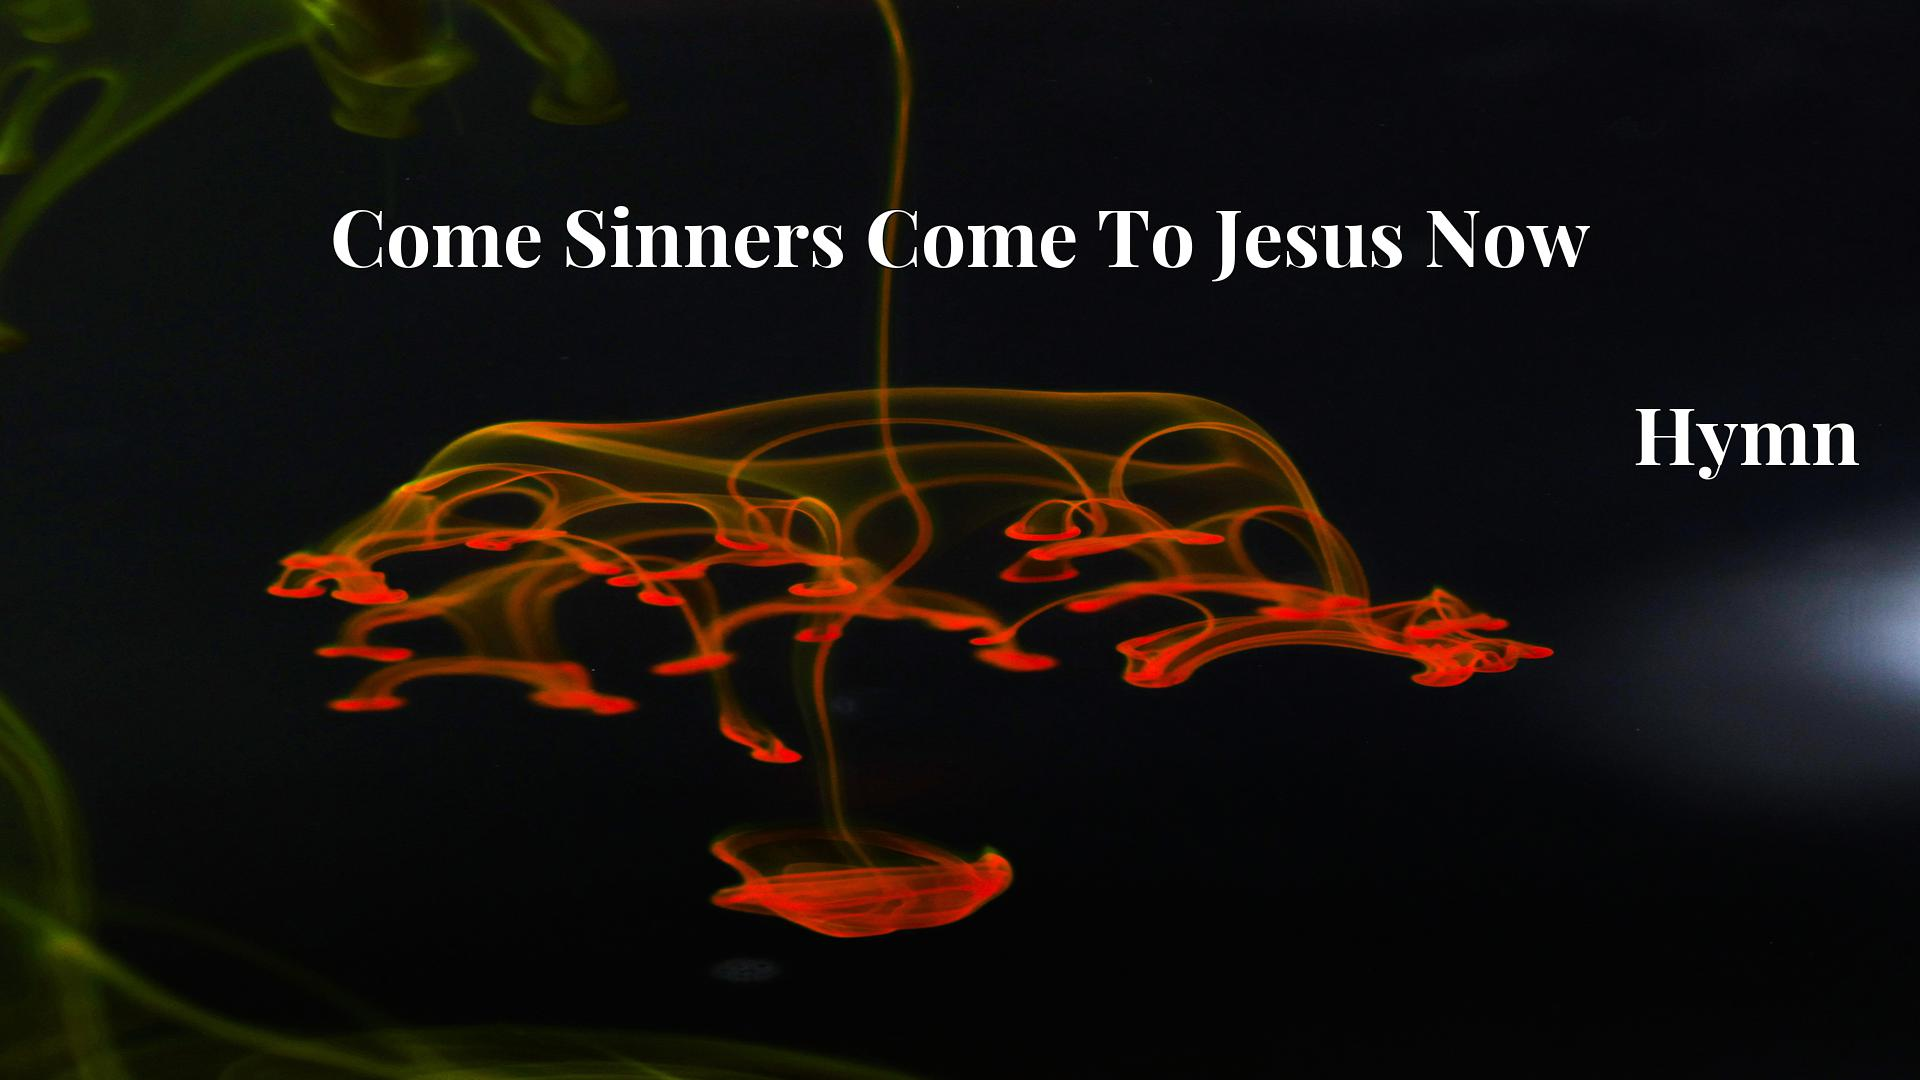 Come Sinners Come To Jesus Now - Hymn